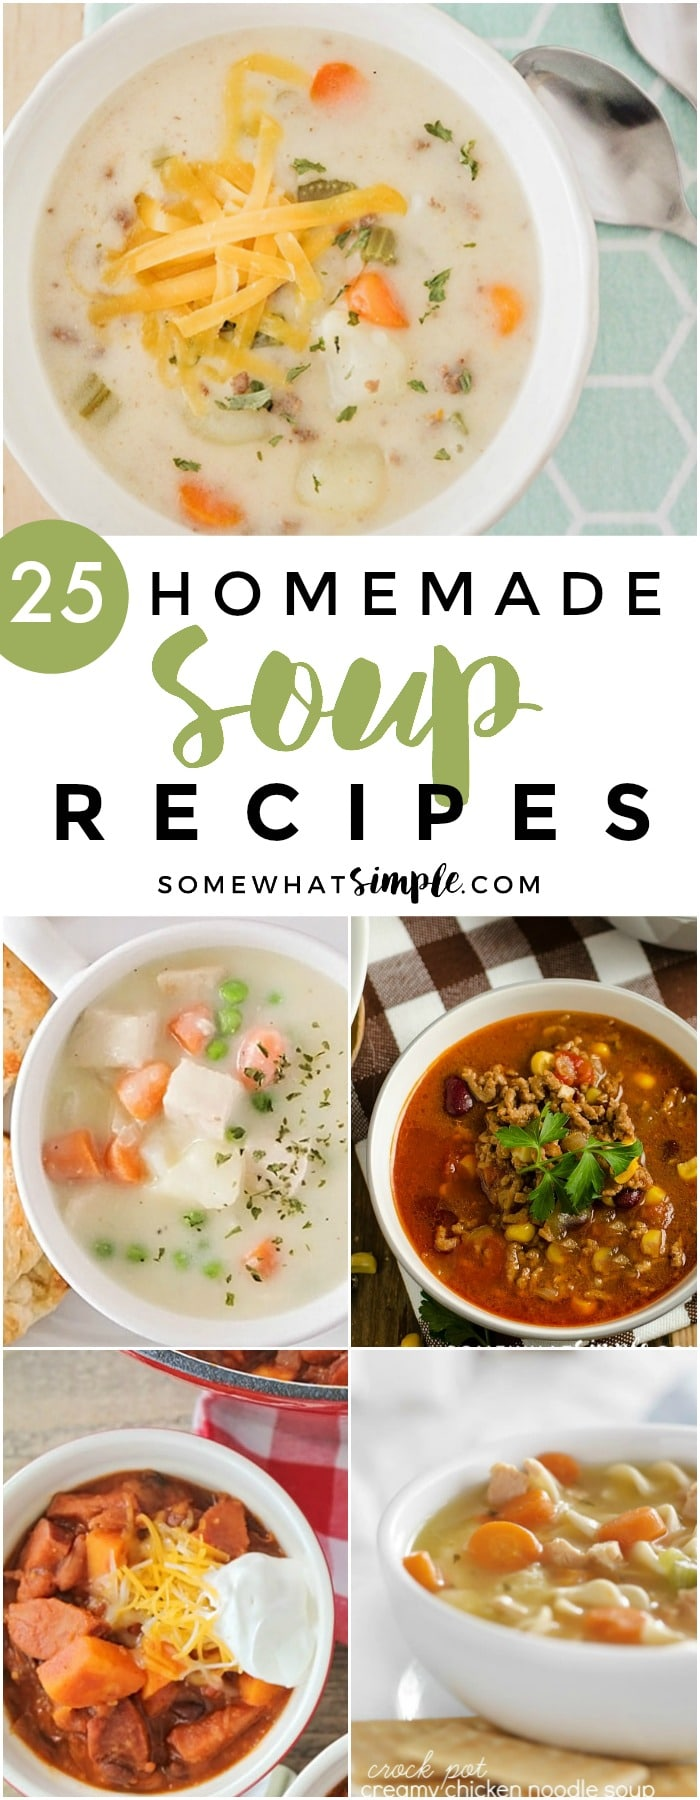 Outside temperatures are dropping and its time to cuddle up inside with a blanket and some delicious food! These 25 homemade soup recipes are the ultimate comfort food and just might be what the doctor ordered!